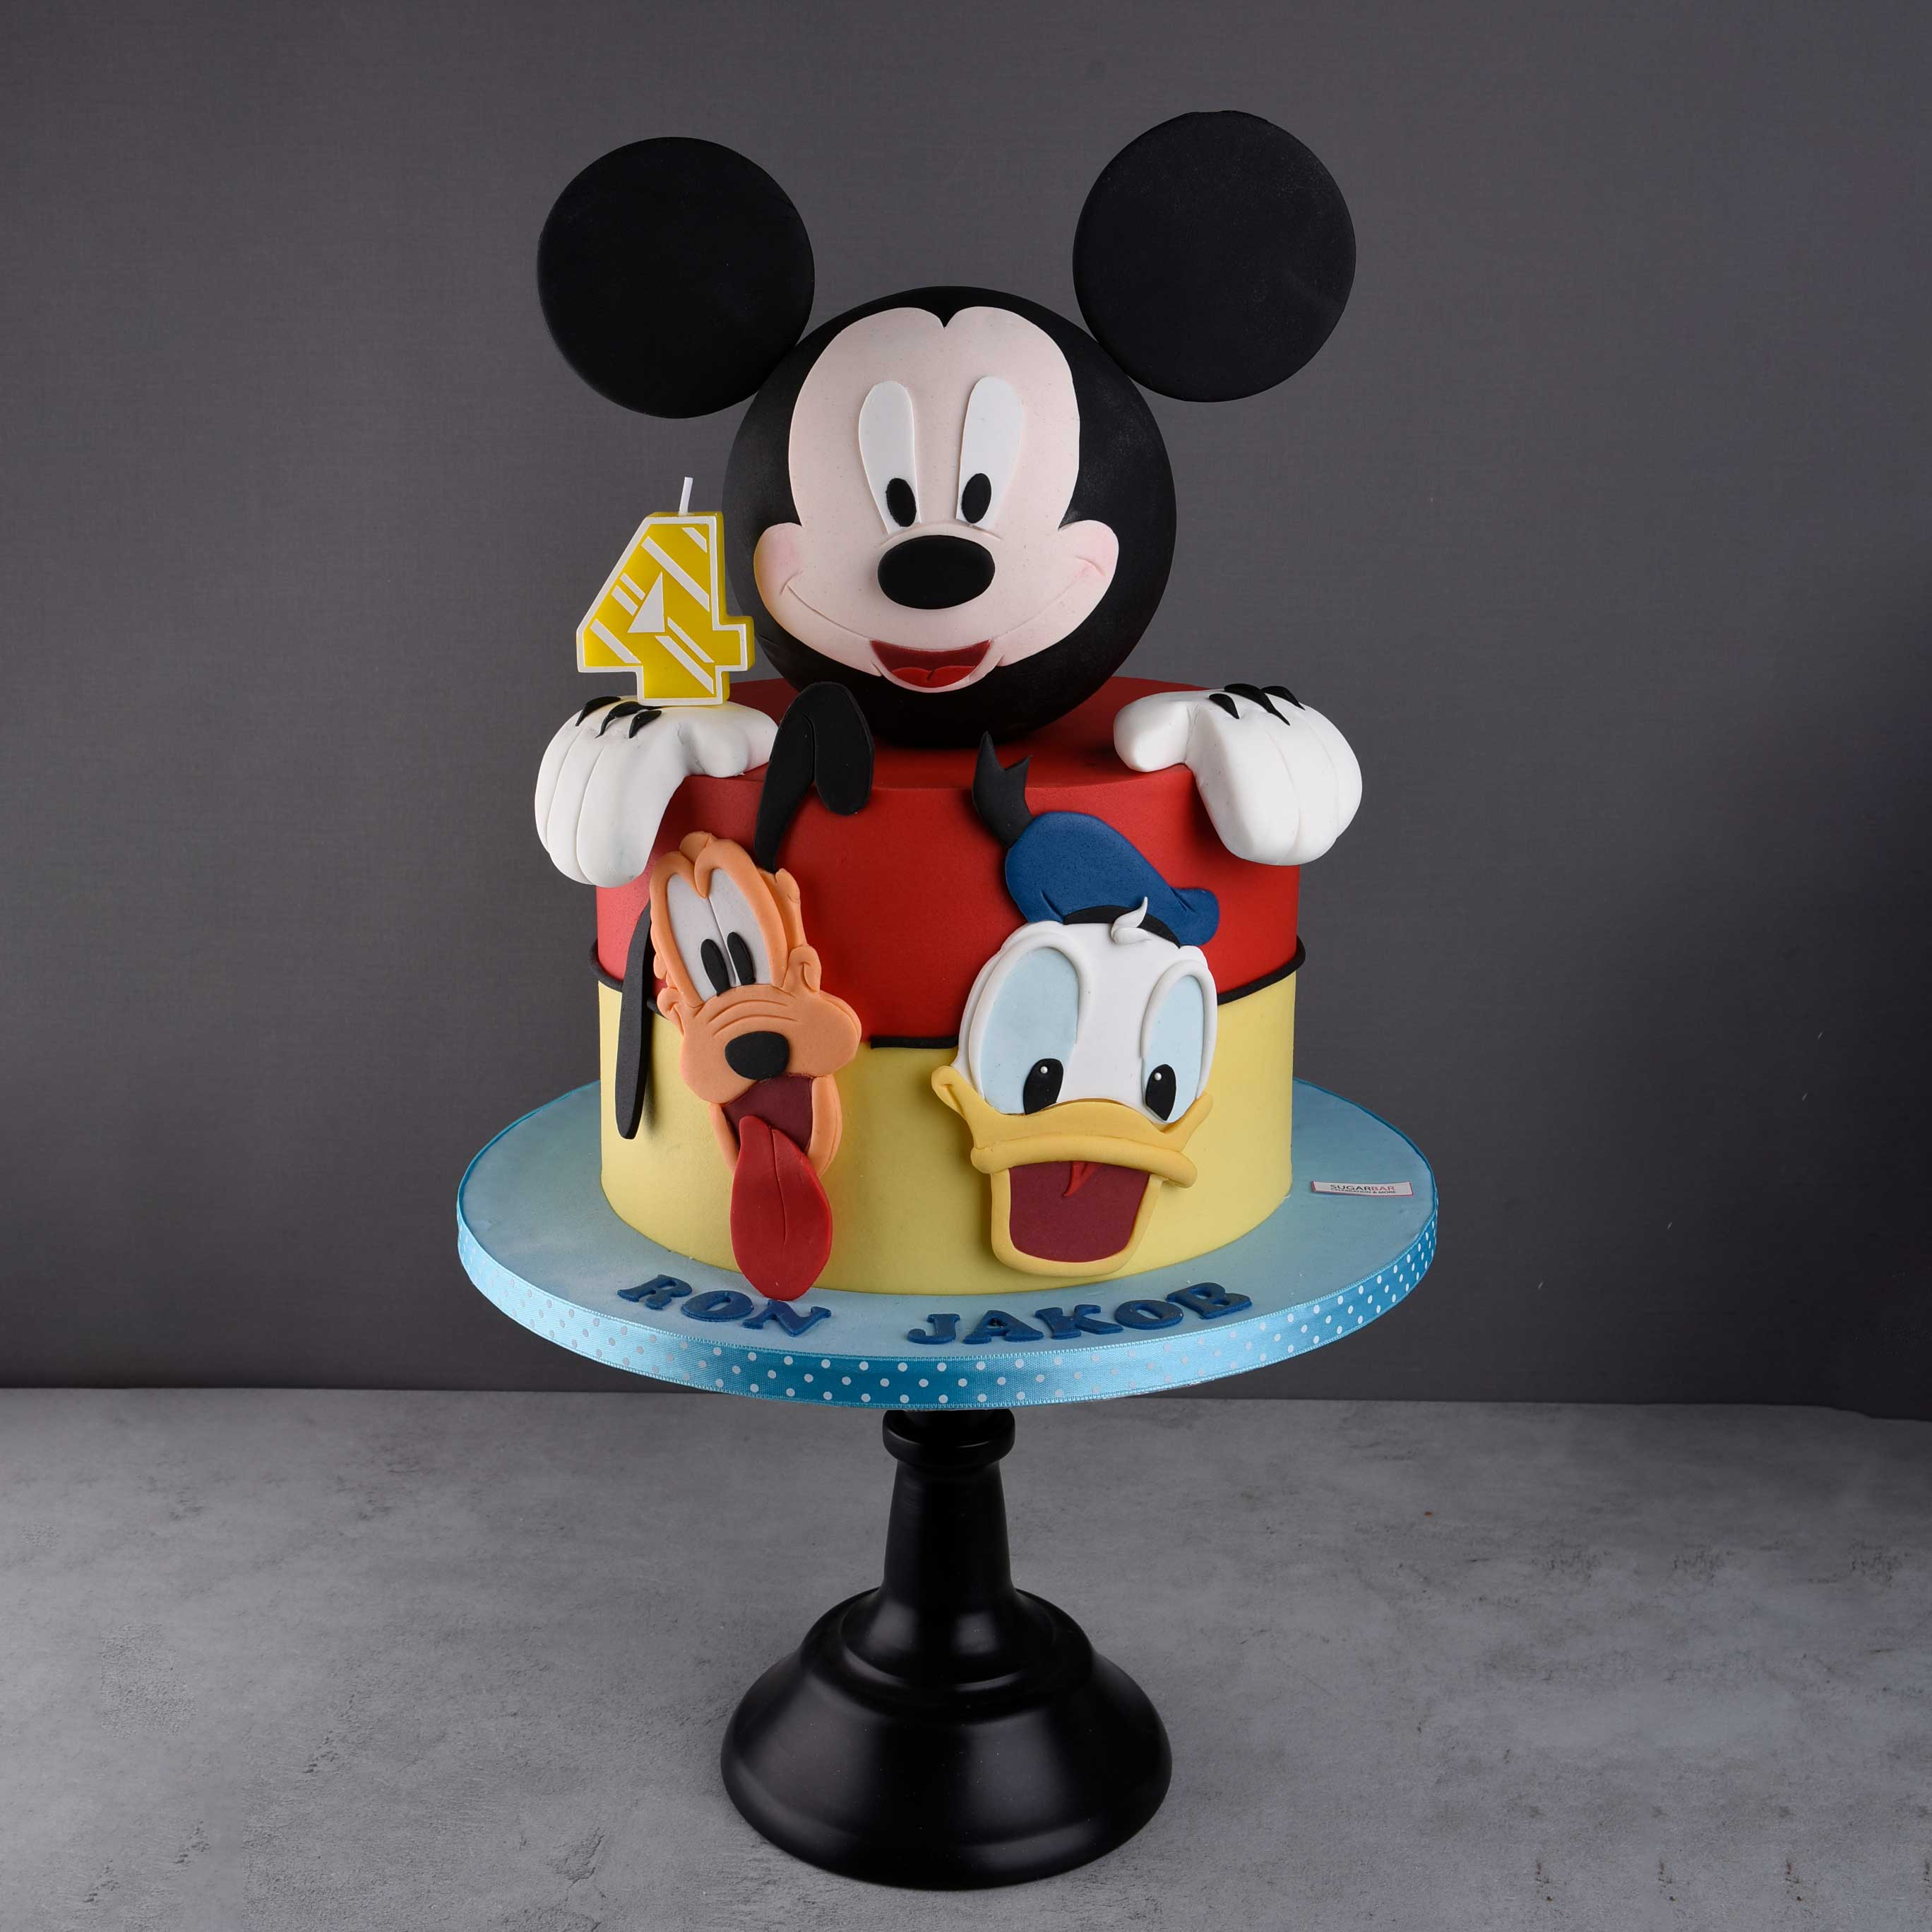 Mickeymouse Disney Torte